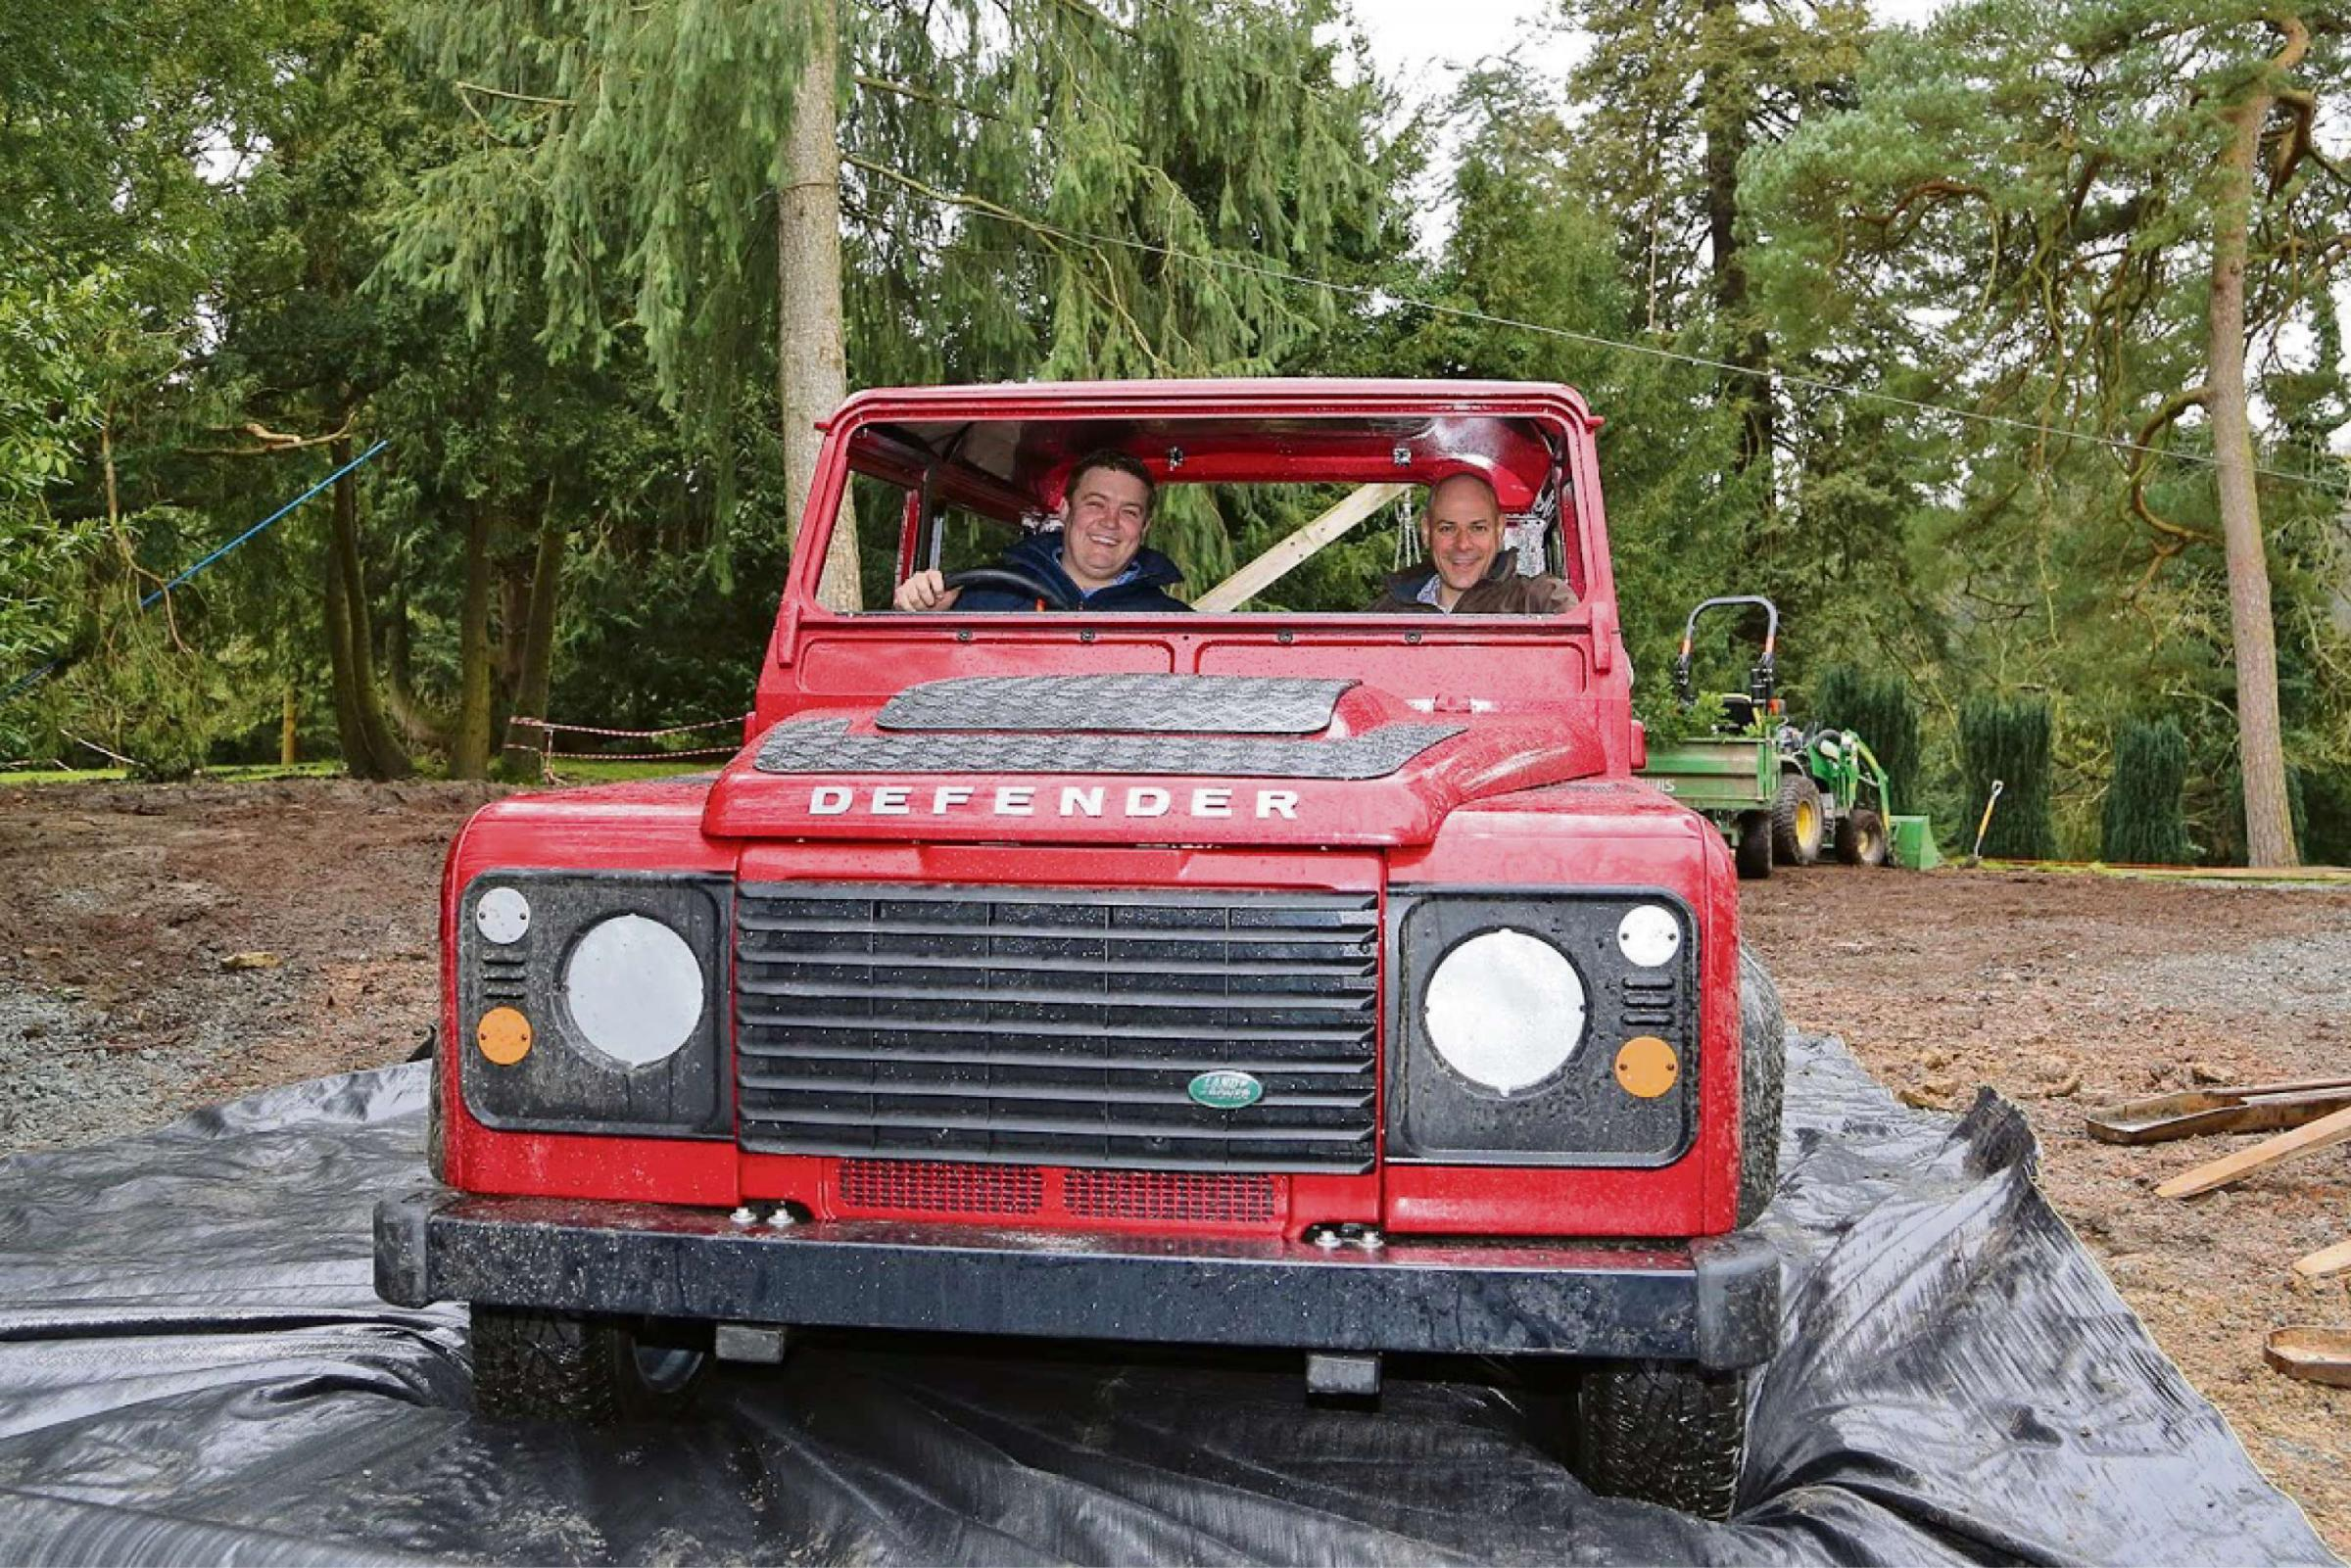 Land Rover parks up as fun addition to Eastnor Castle playground